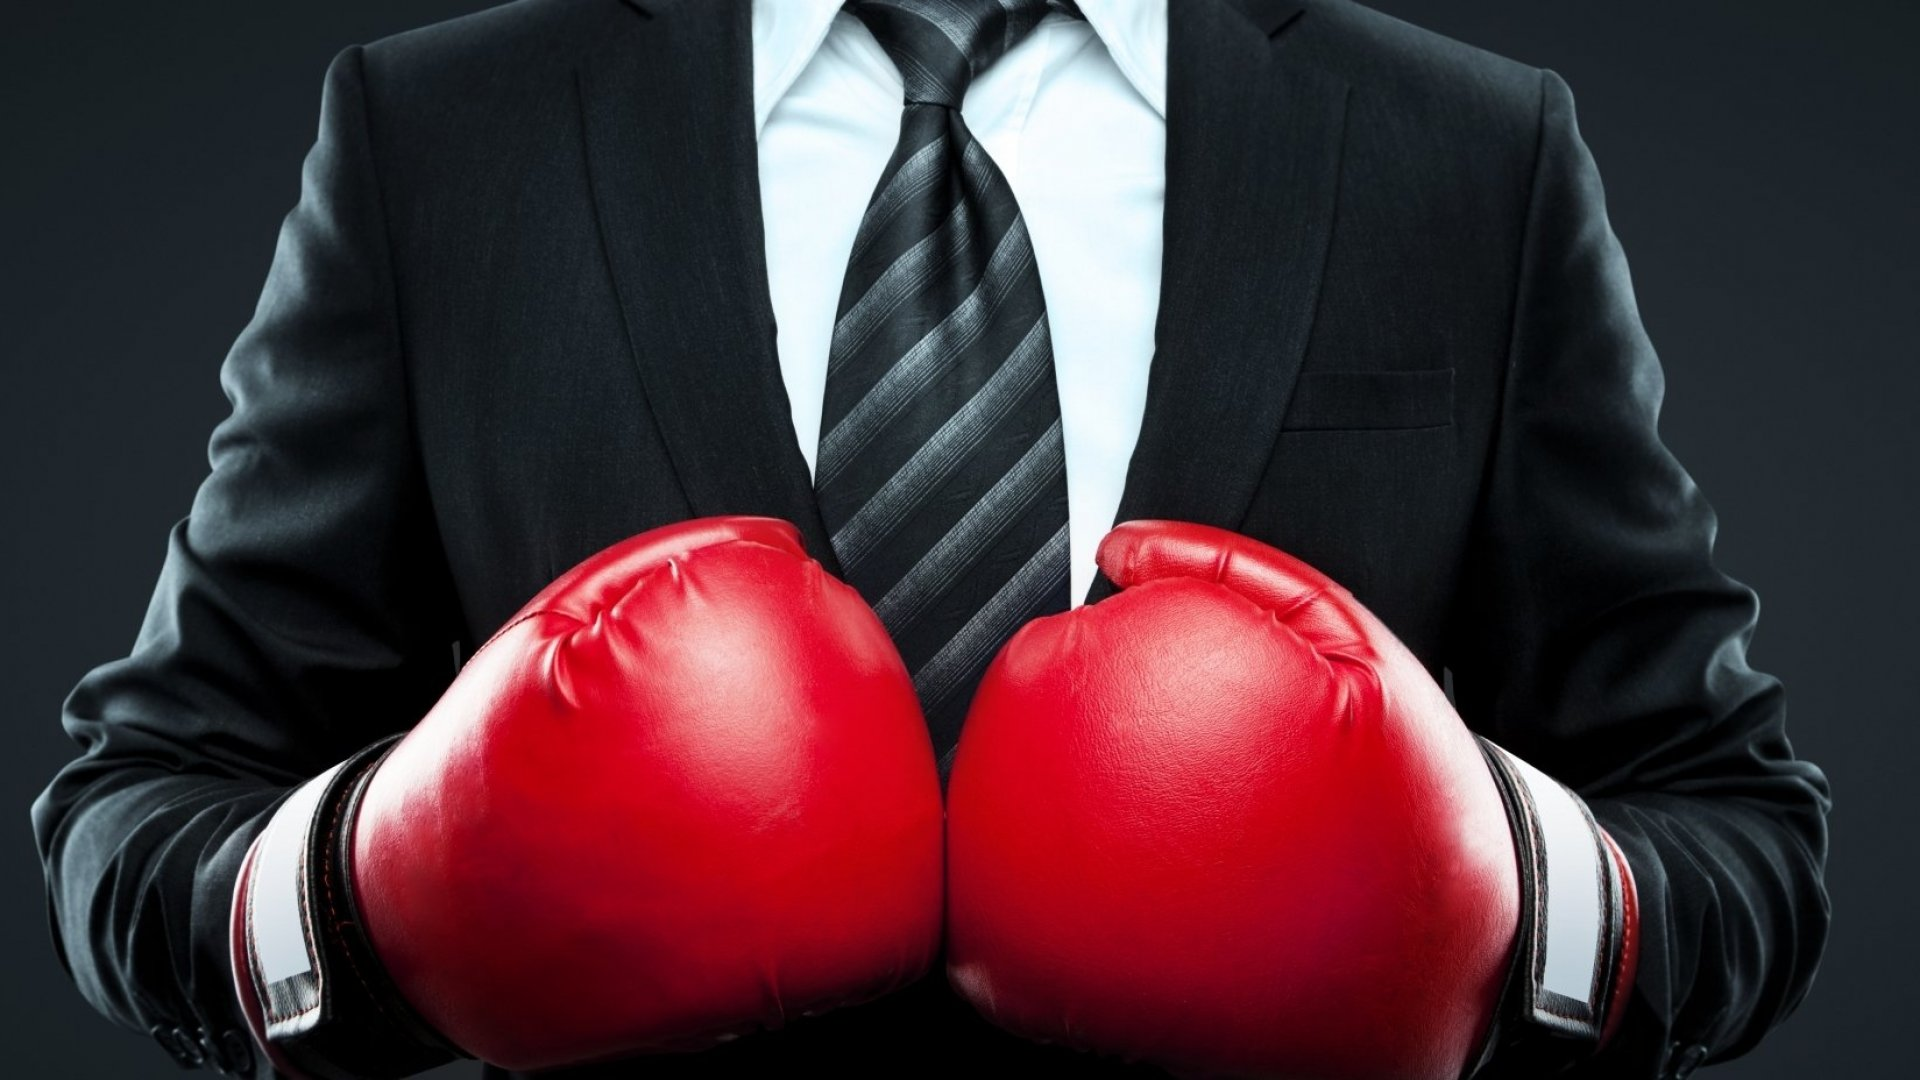 Too Much Competition Between Your Employees Could Kill Your Business. Here's How to Stop It